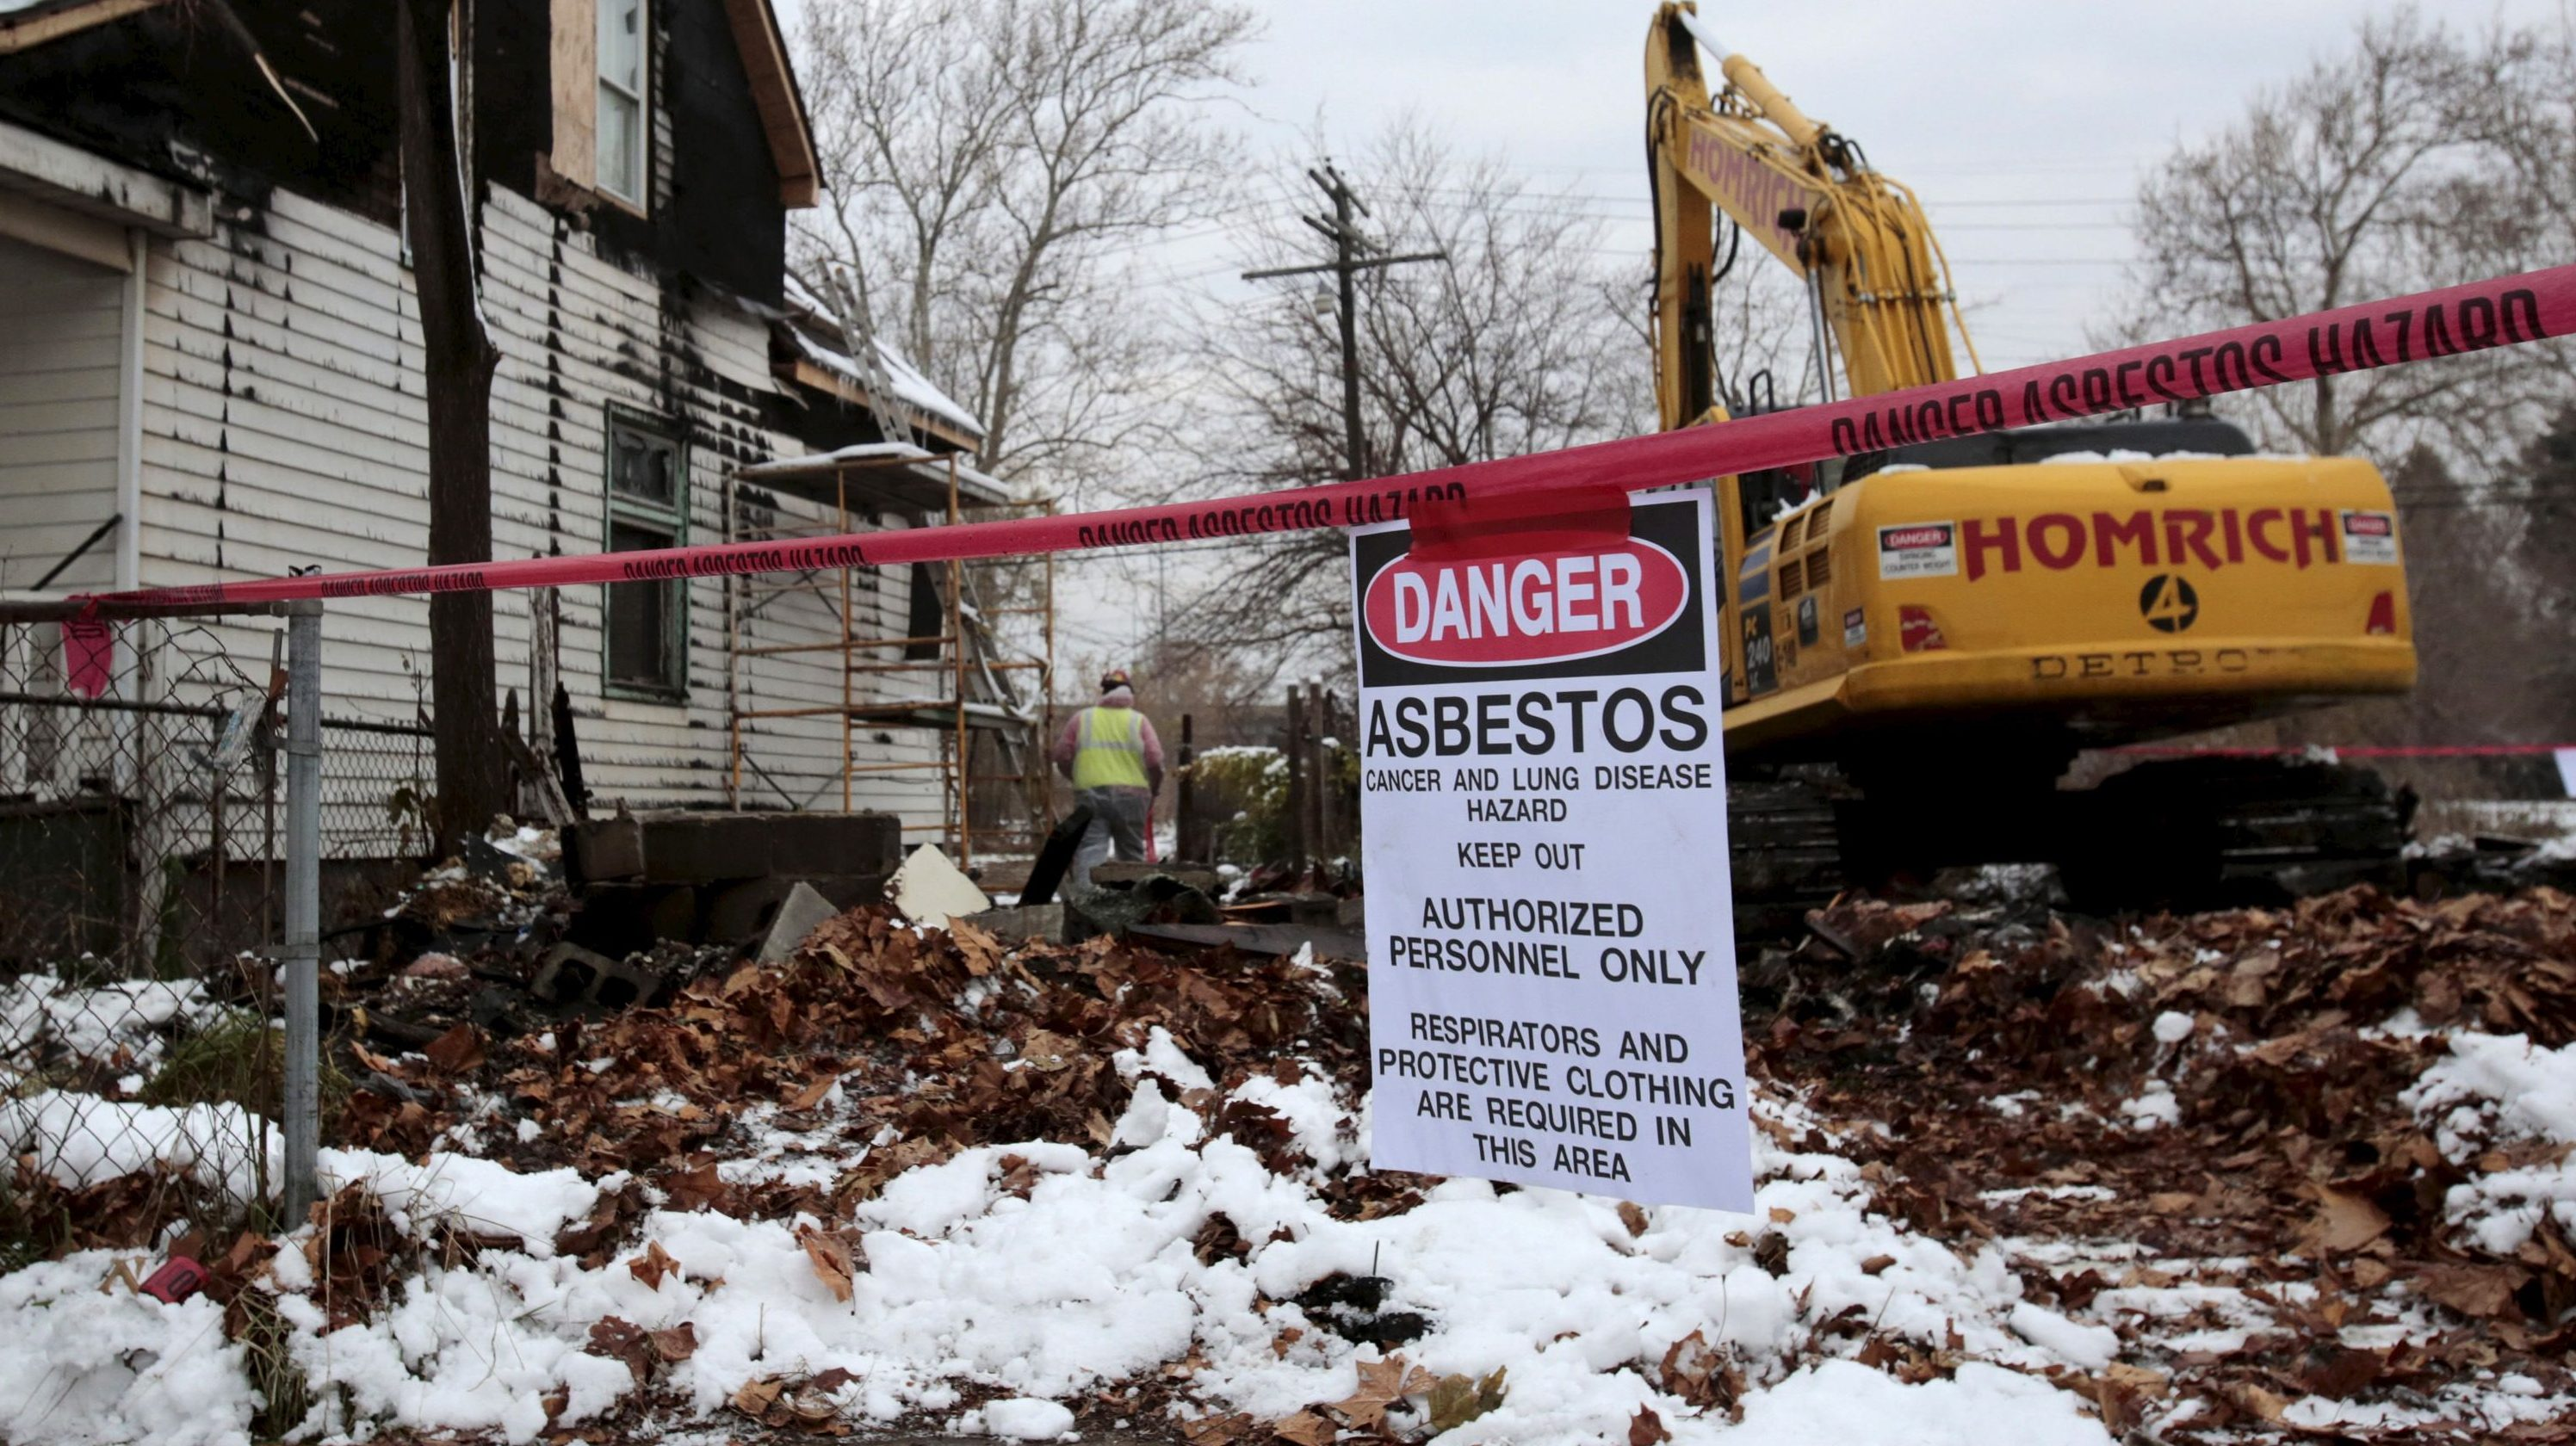 Bringing asbestos back from the dead.